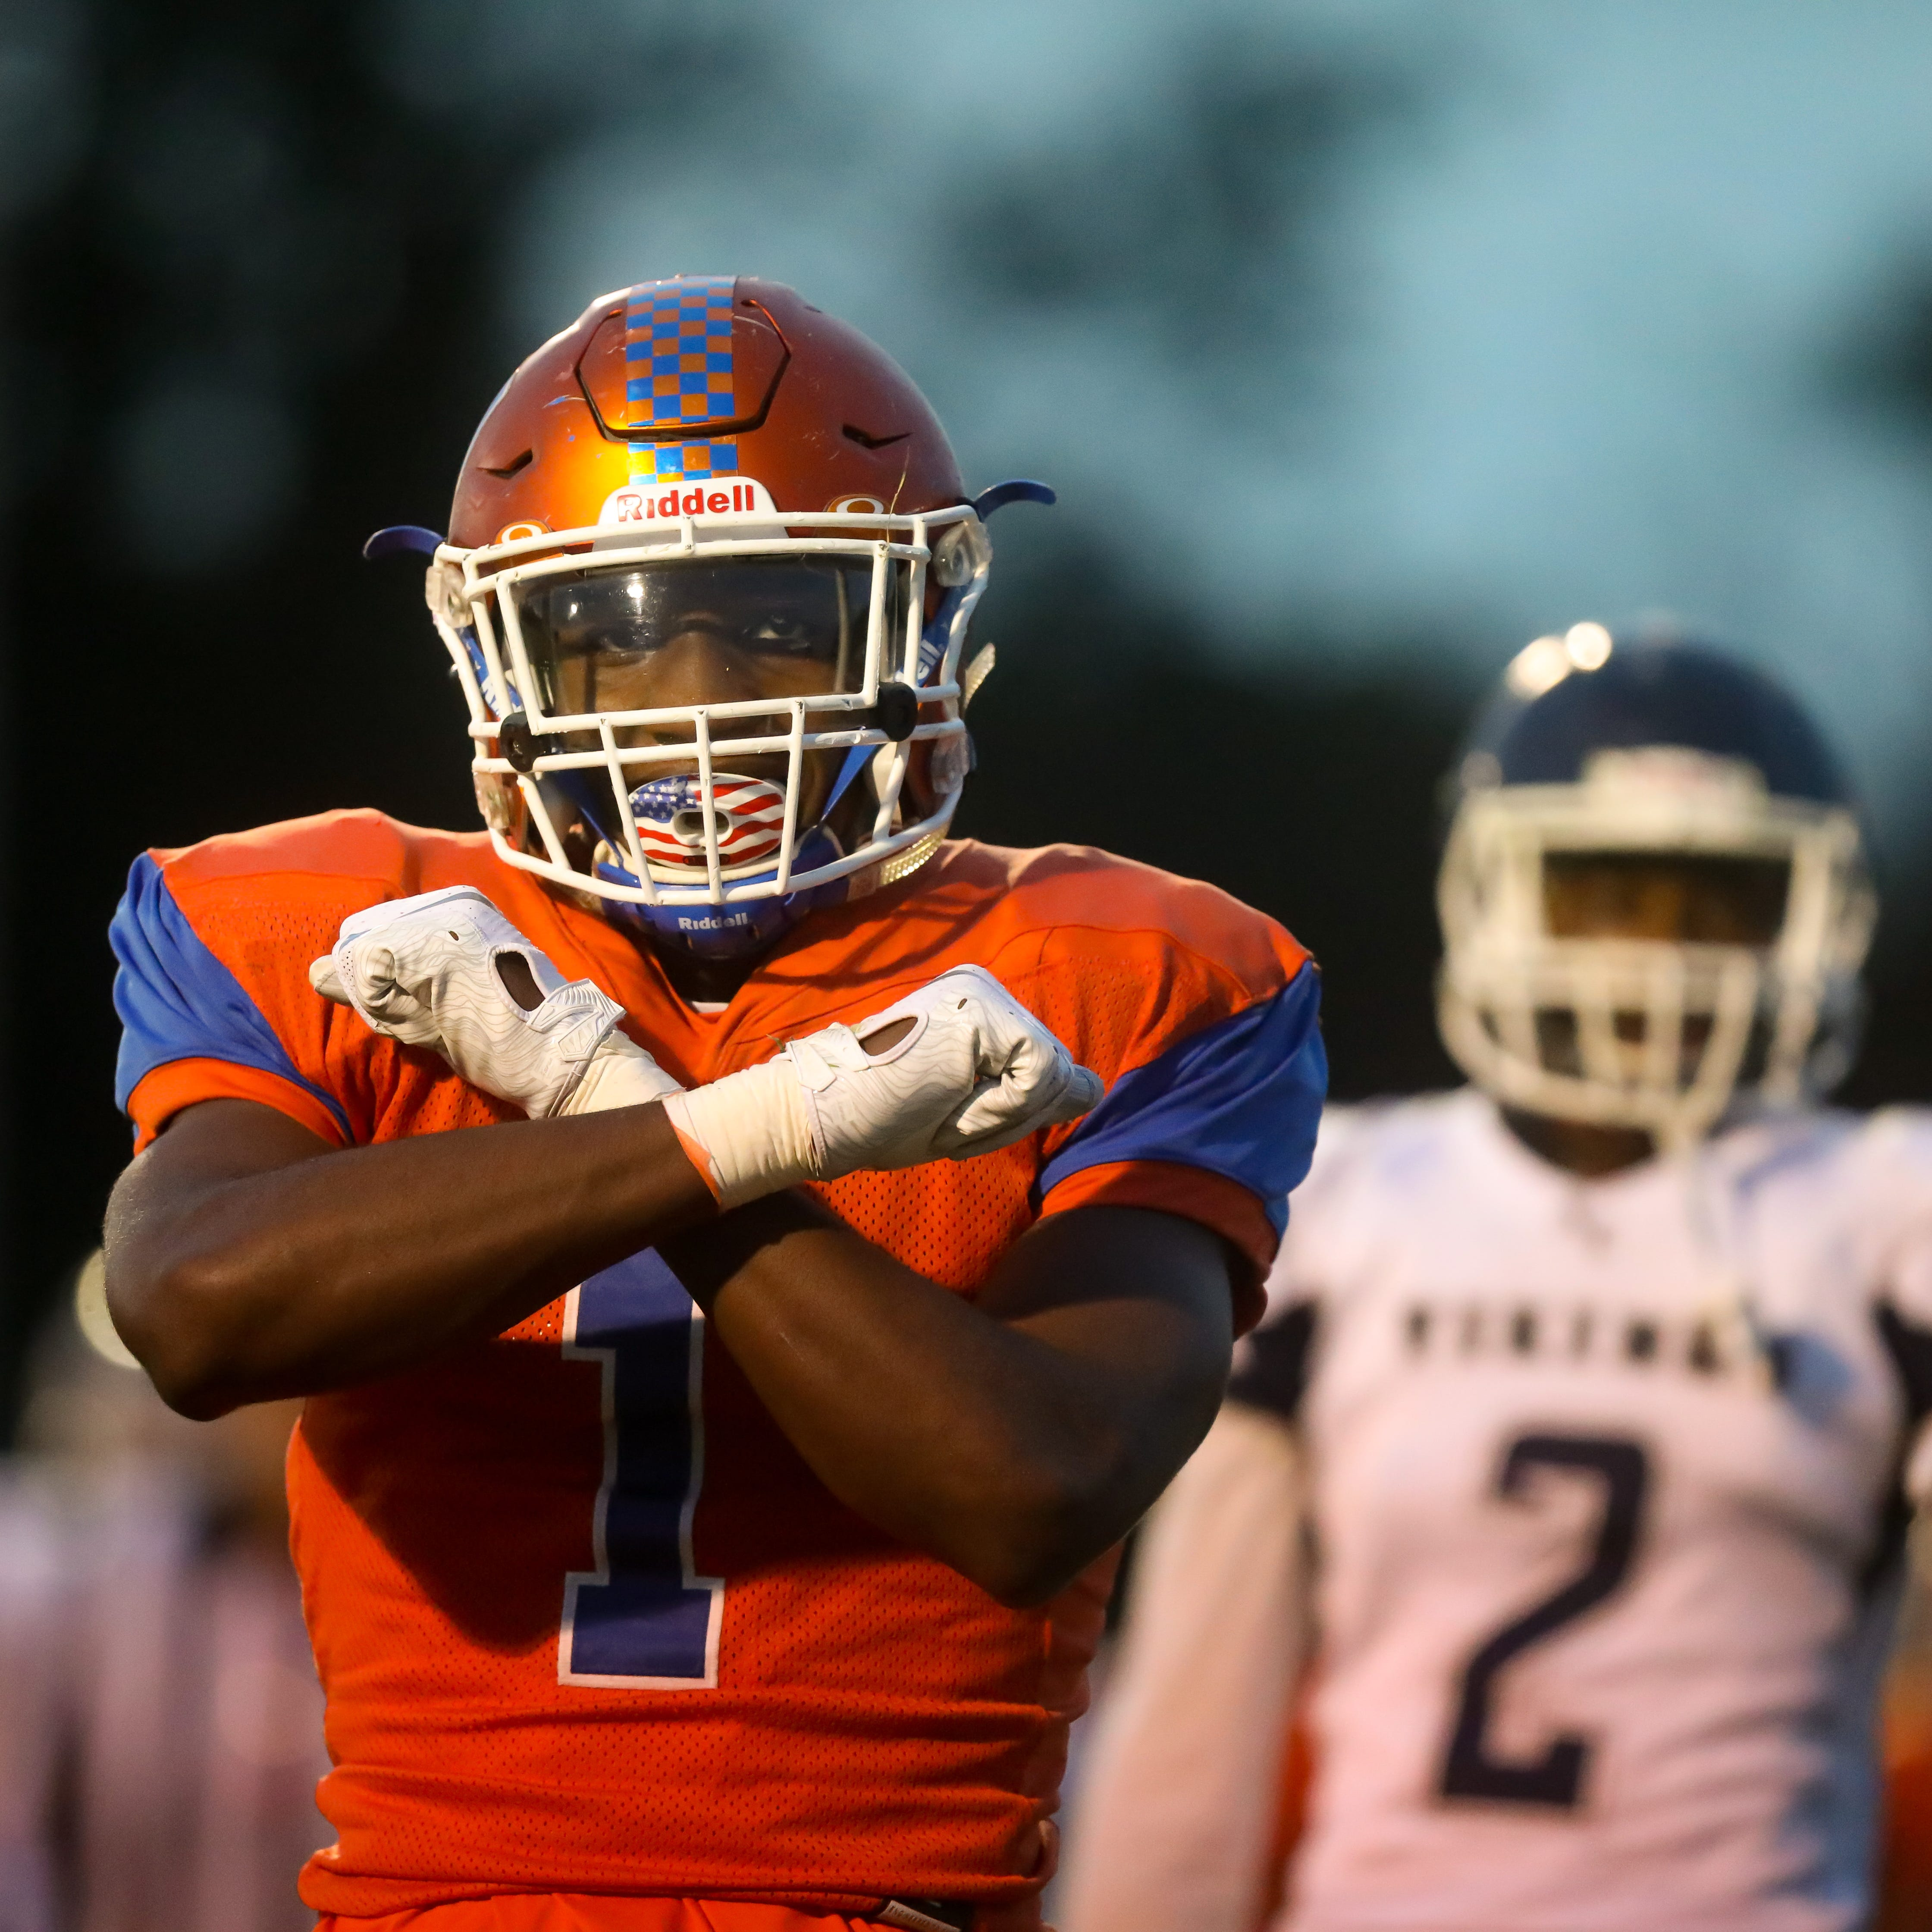 Football: Undeterred Millville squad peaking at right time